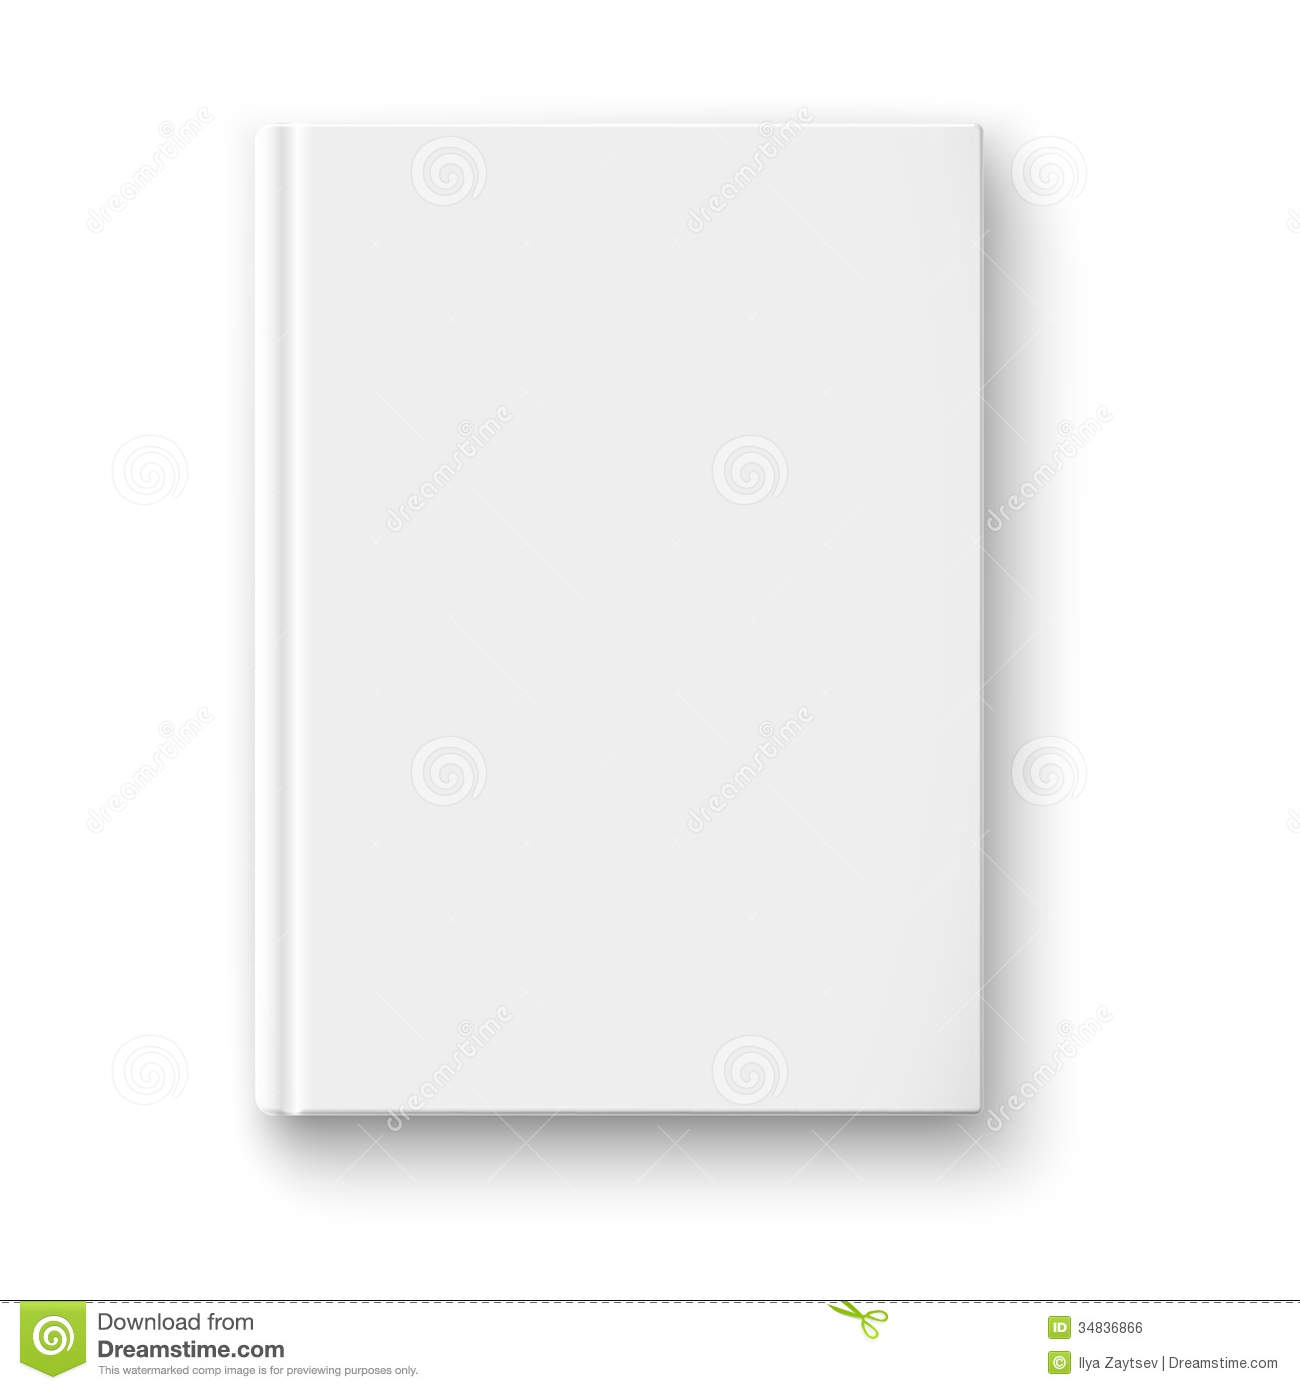 cookbook covers template - 14 free blank book cover template psd images blank book